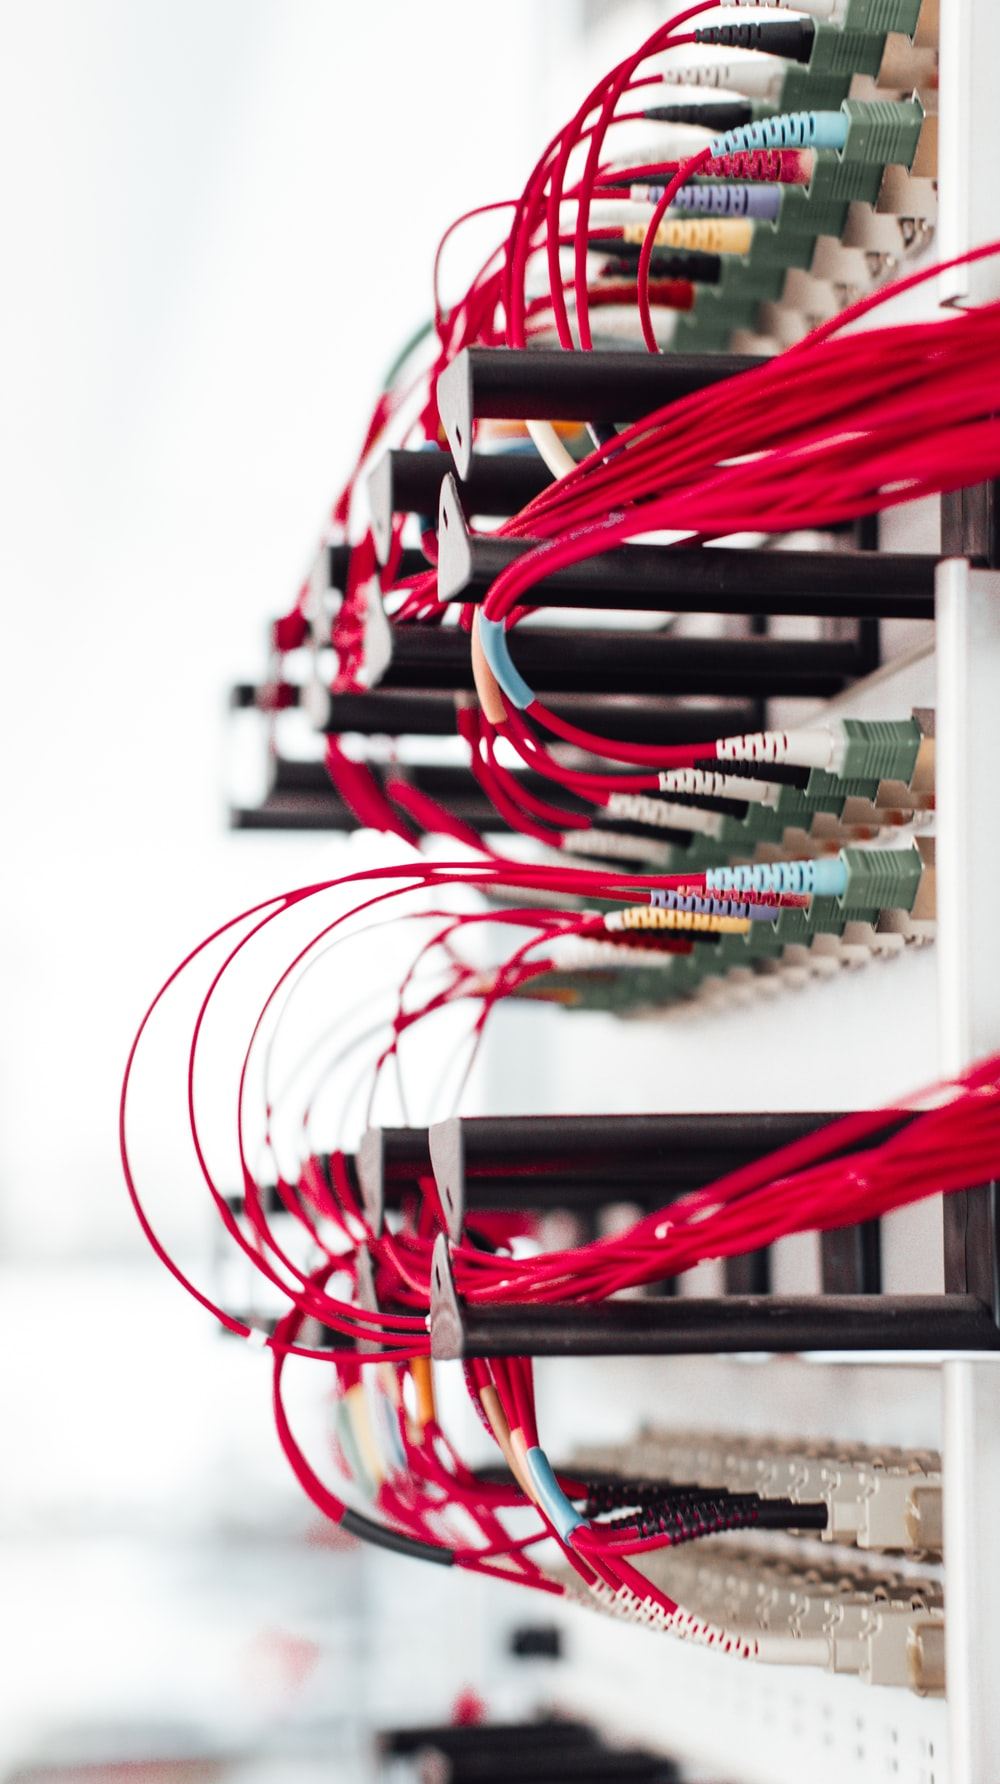 red white and green wires